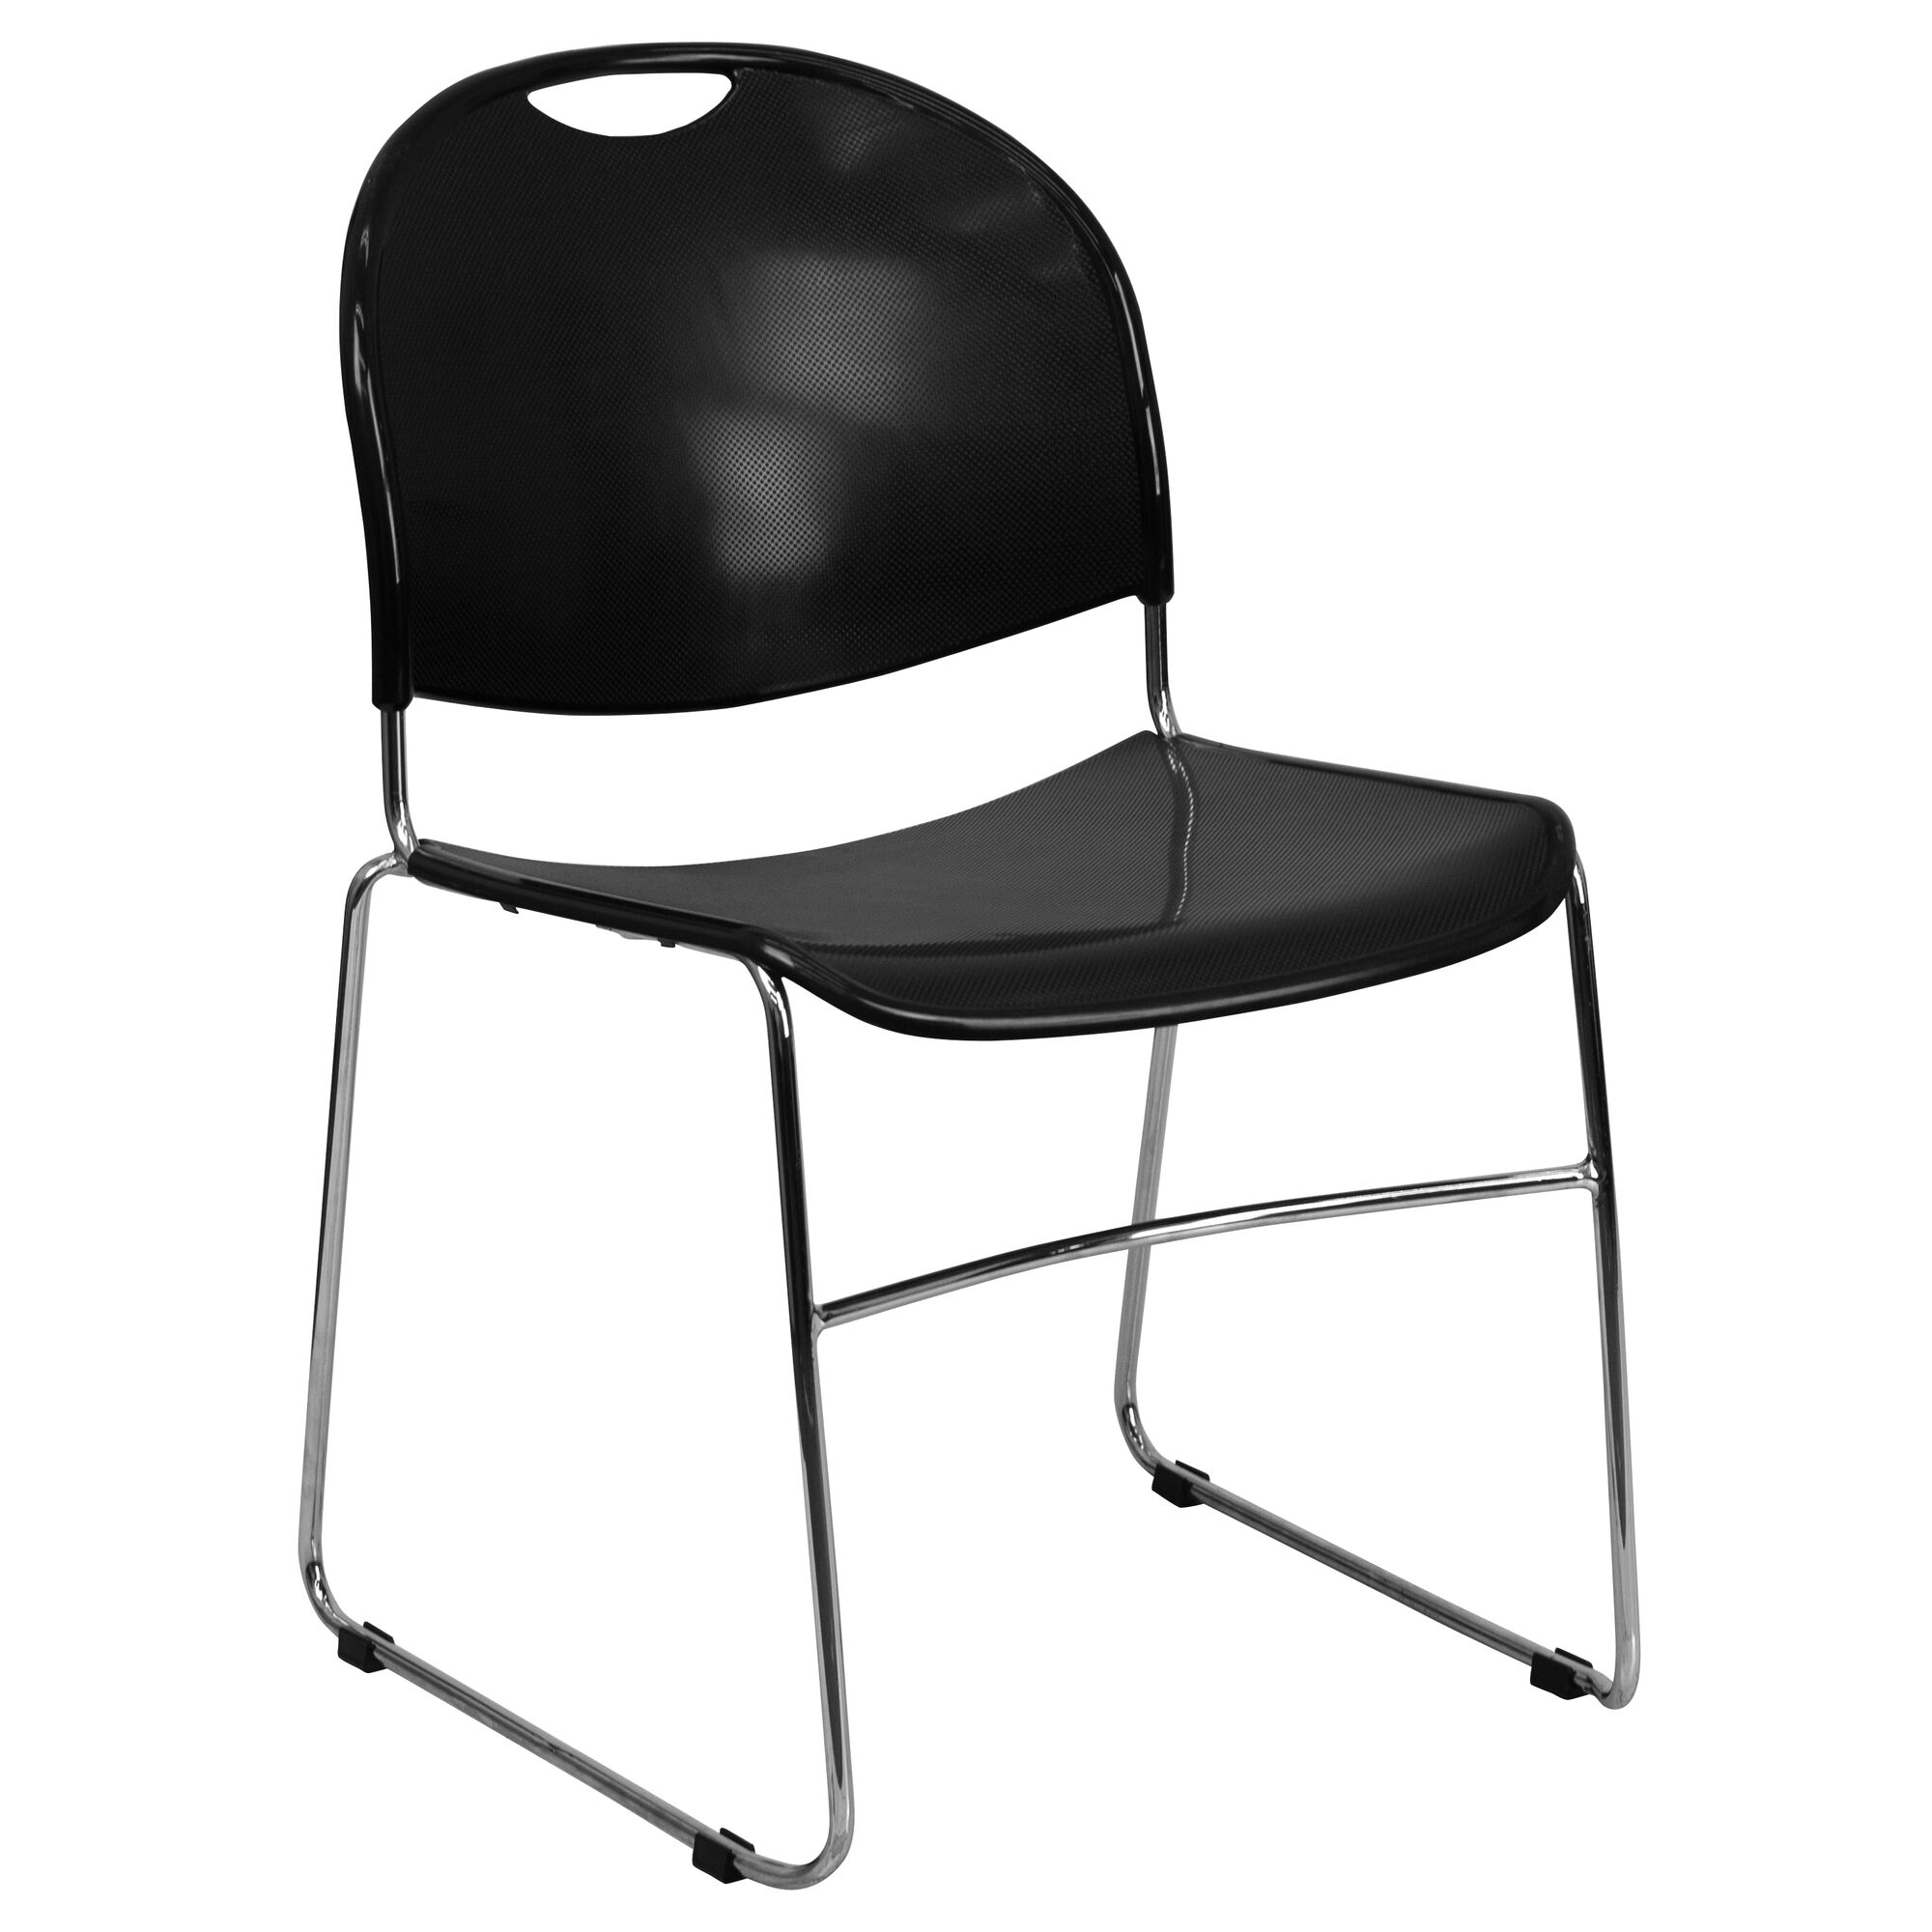 foldingchairs4less coupons. hercules series 880 lb. capacity black ultra compact stack chair with chrome frame foldingchairs4less coupons u